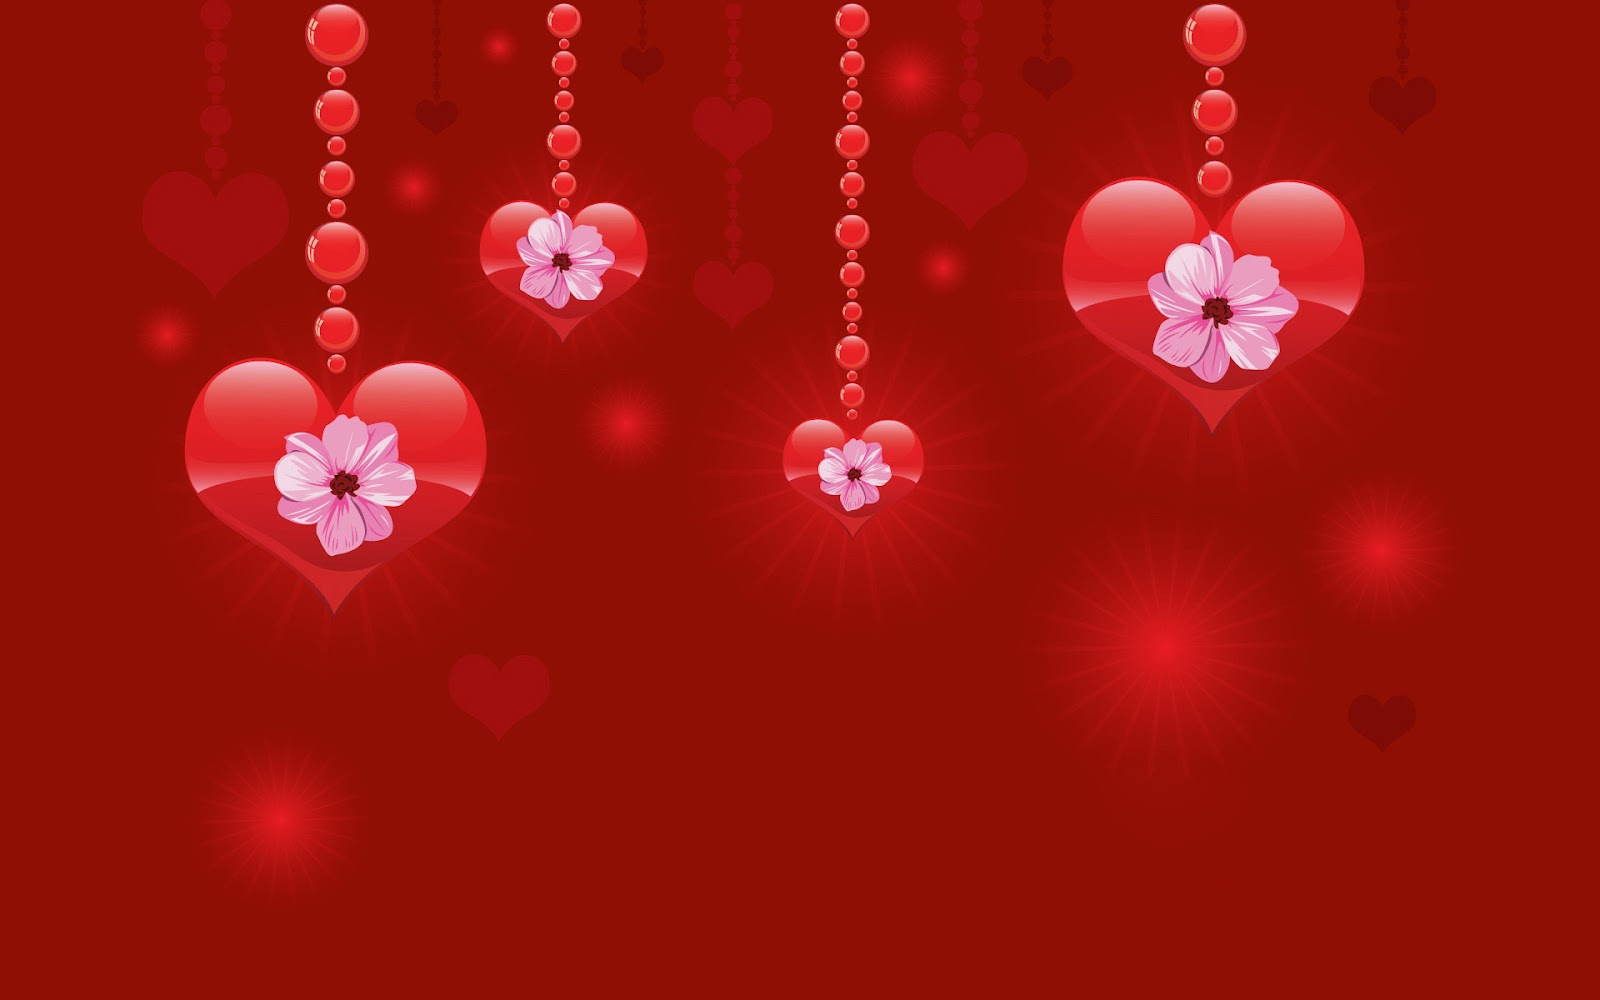 Valentines Day Wallpapers 2013   2014 ImageBankbiz 1600x1000